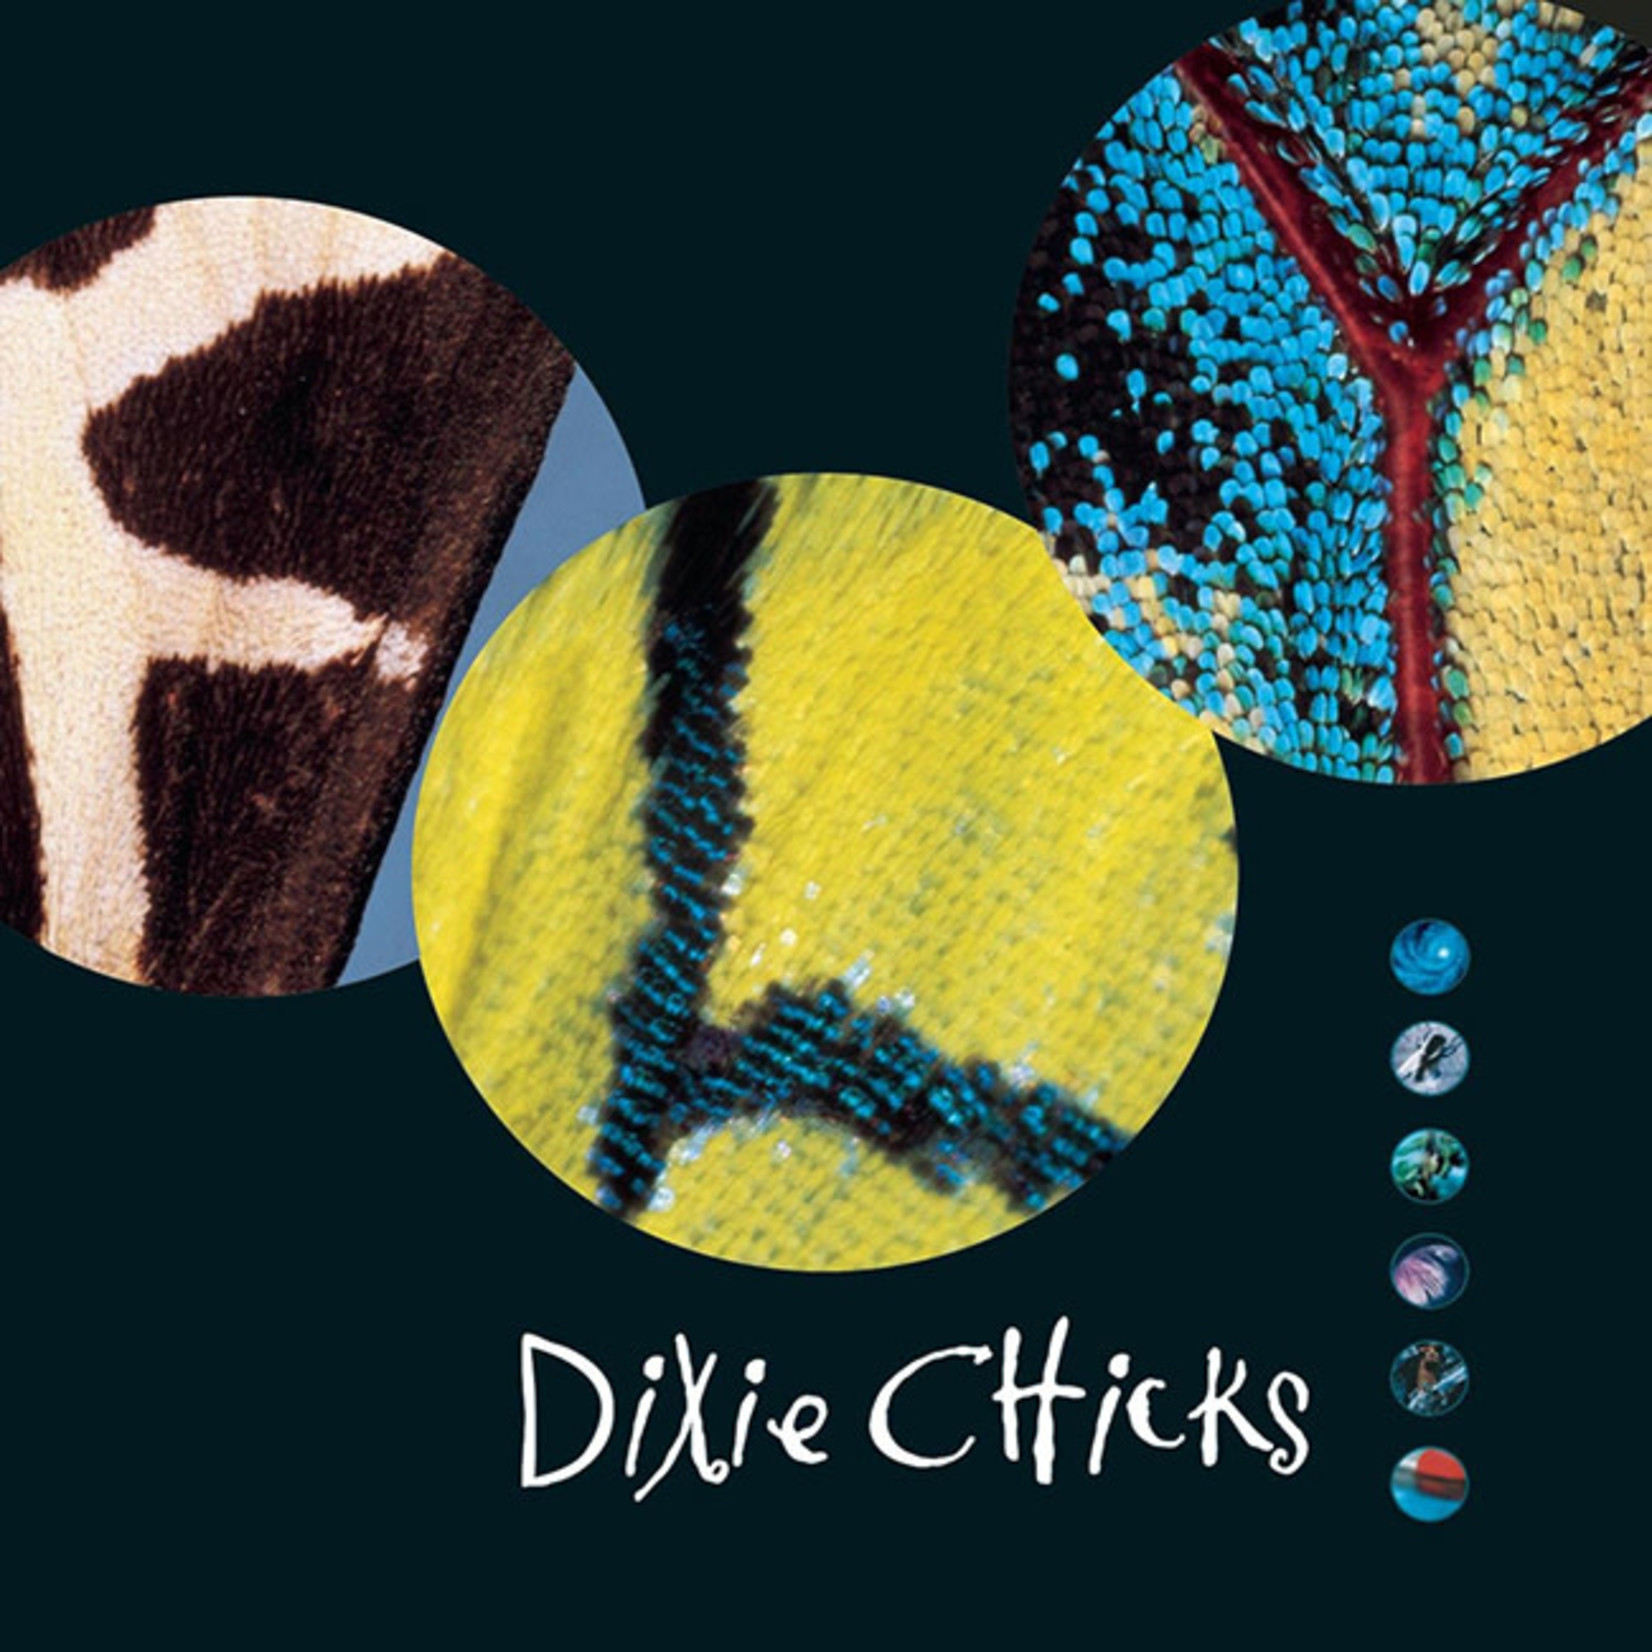 [New] Dixie Chicks: Fly